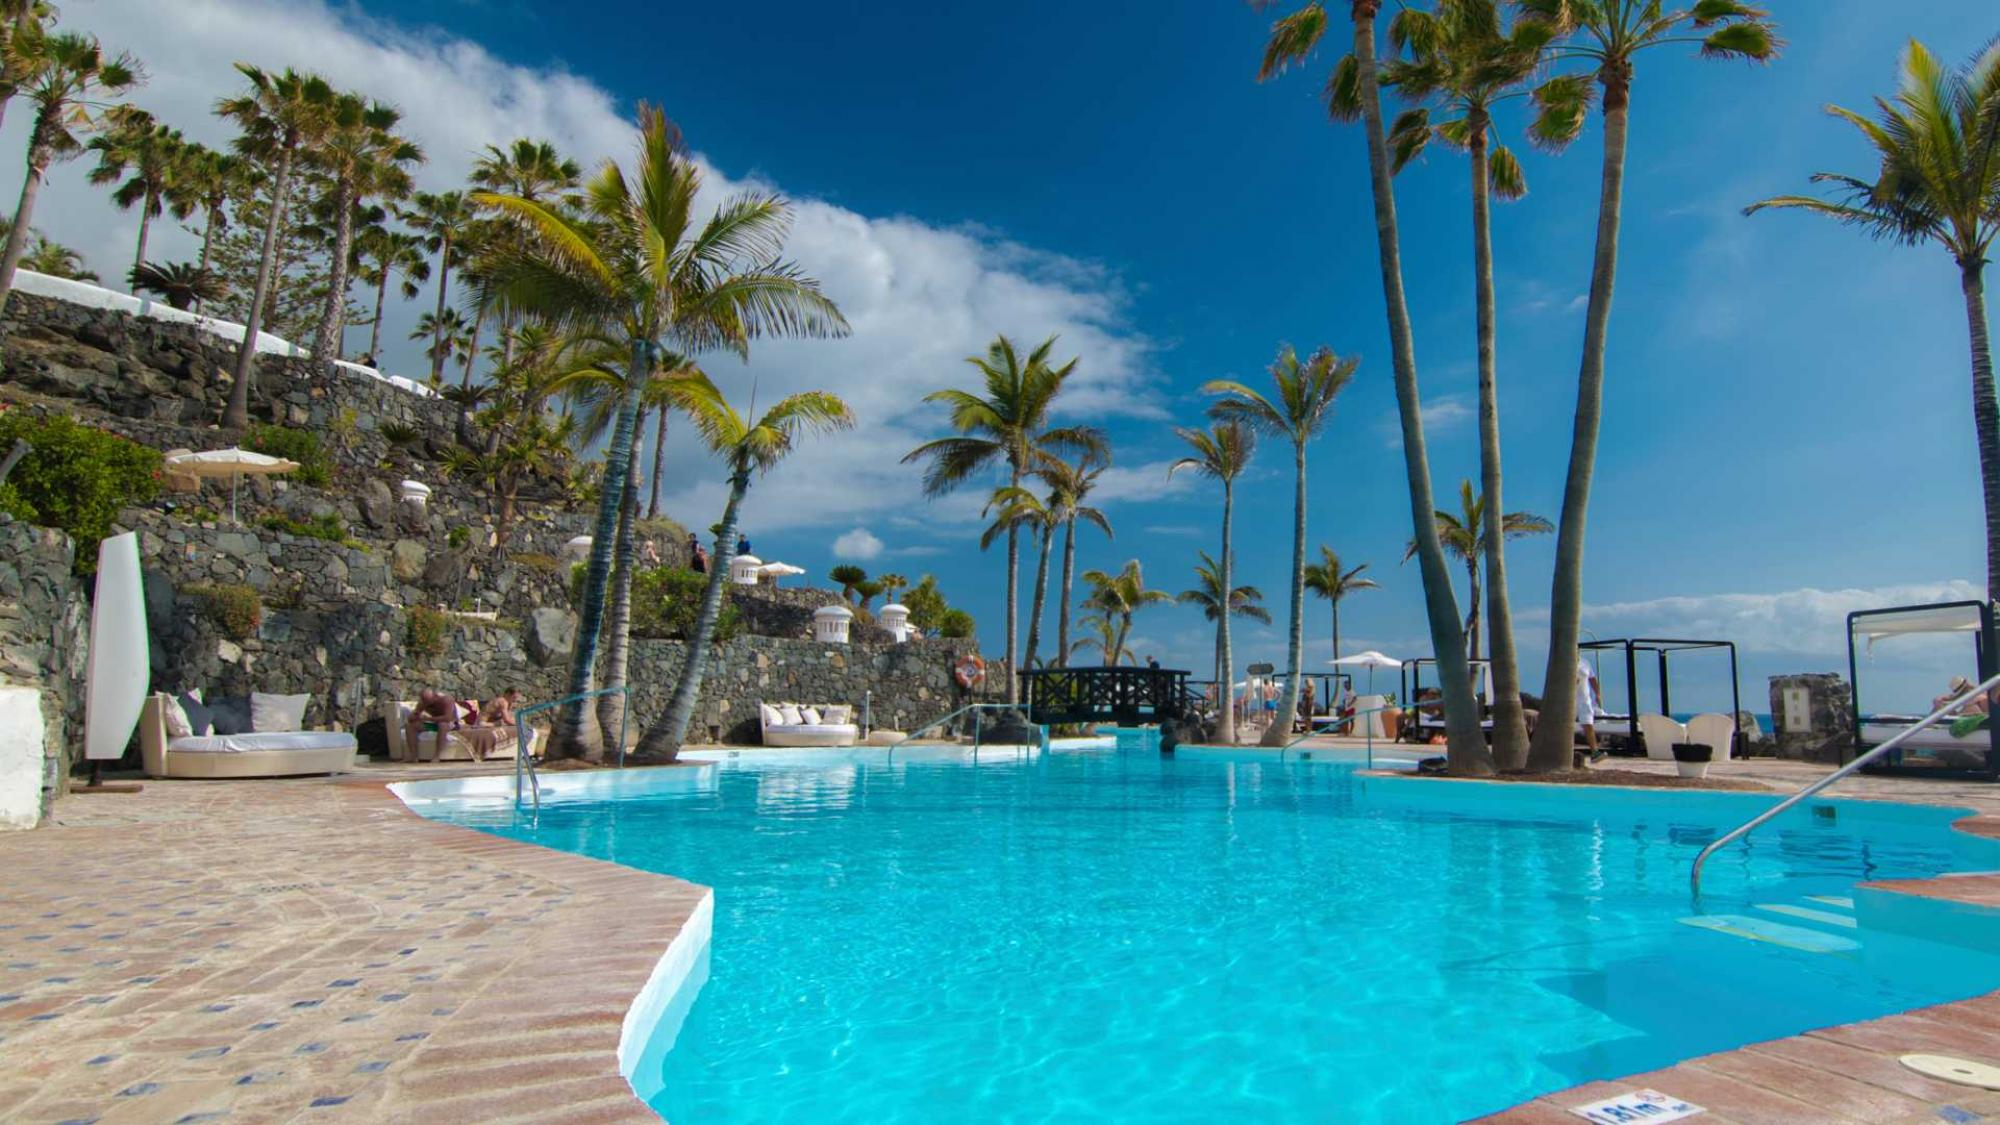 Hotel Jardin Tropical, Book Your Golf Trip In Tenerife pour Hotel Jardin Tropical Tenerife